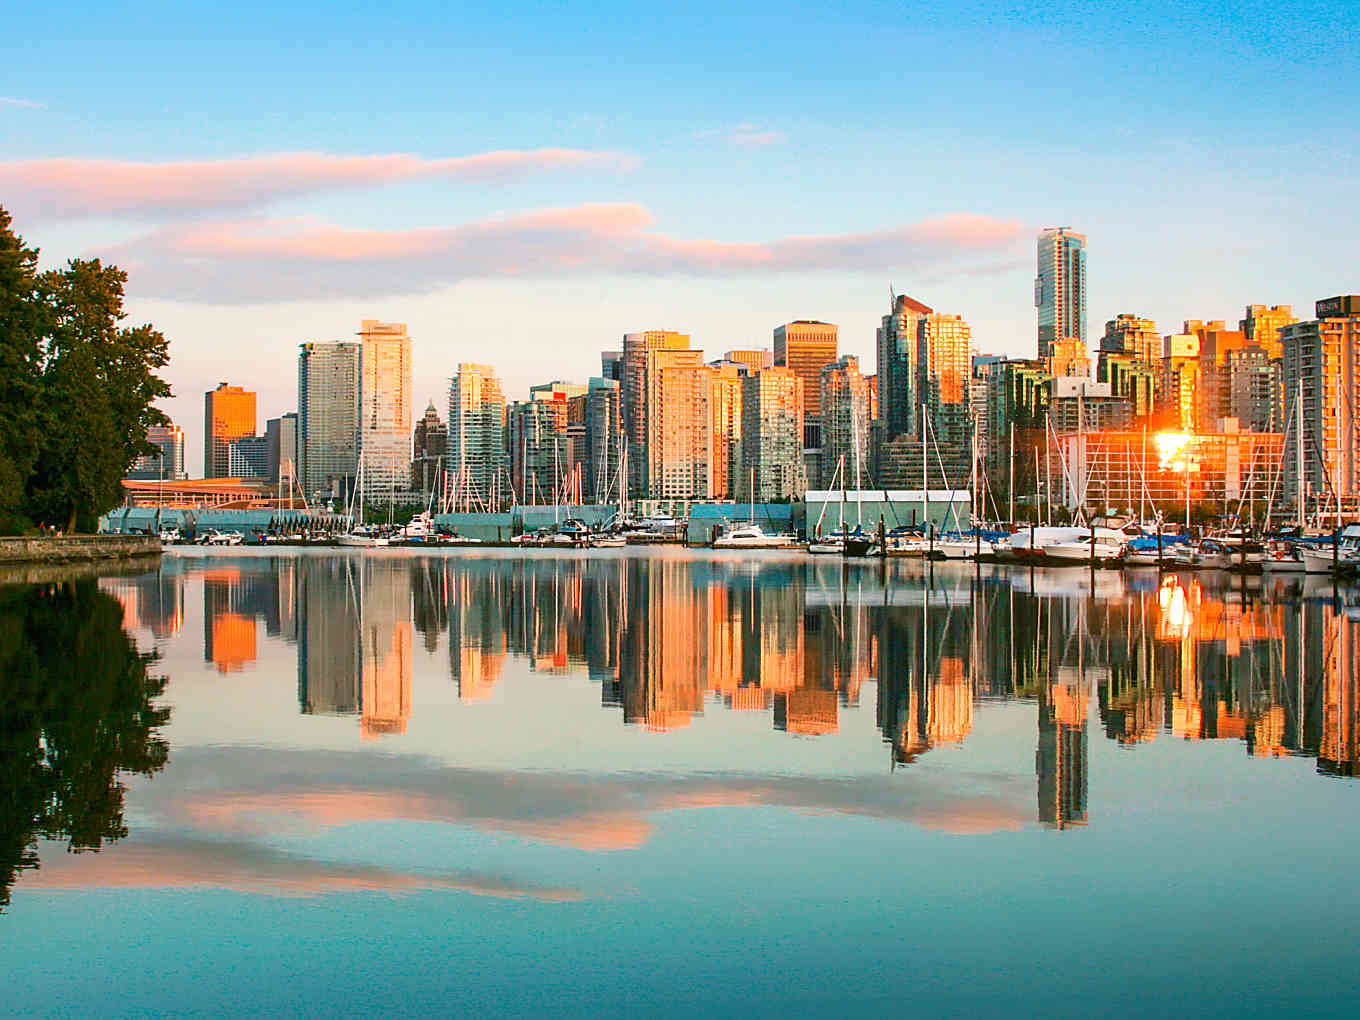 Vancouver, Canada - New destination for the Royal Princess cruise ship. #travel